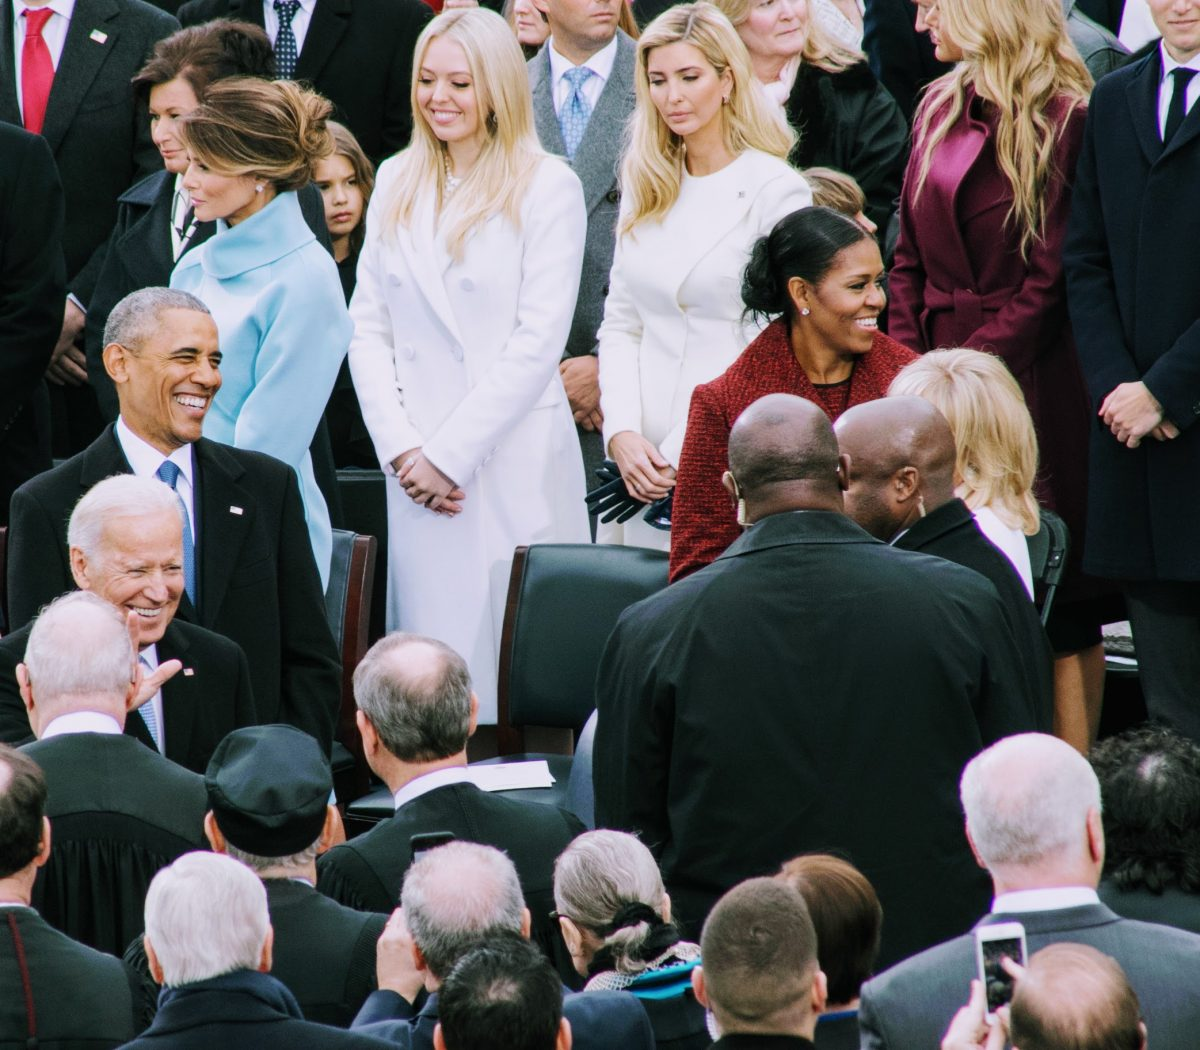 President Obama and FLOTUS Michelle Obama smiling before taking their seats at the inauguration ceremony for the 45th President. /Photo by Shevry Lassiter